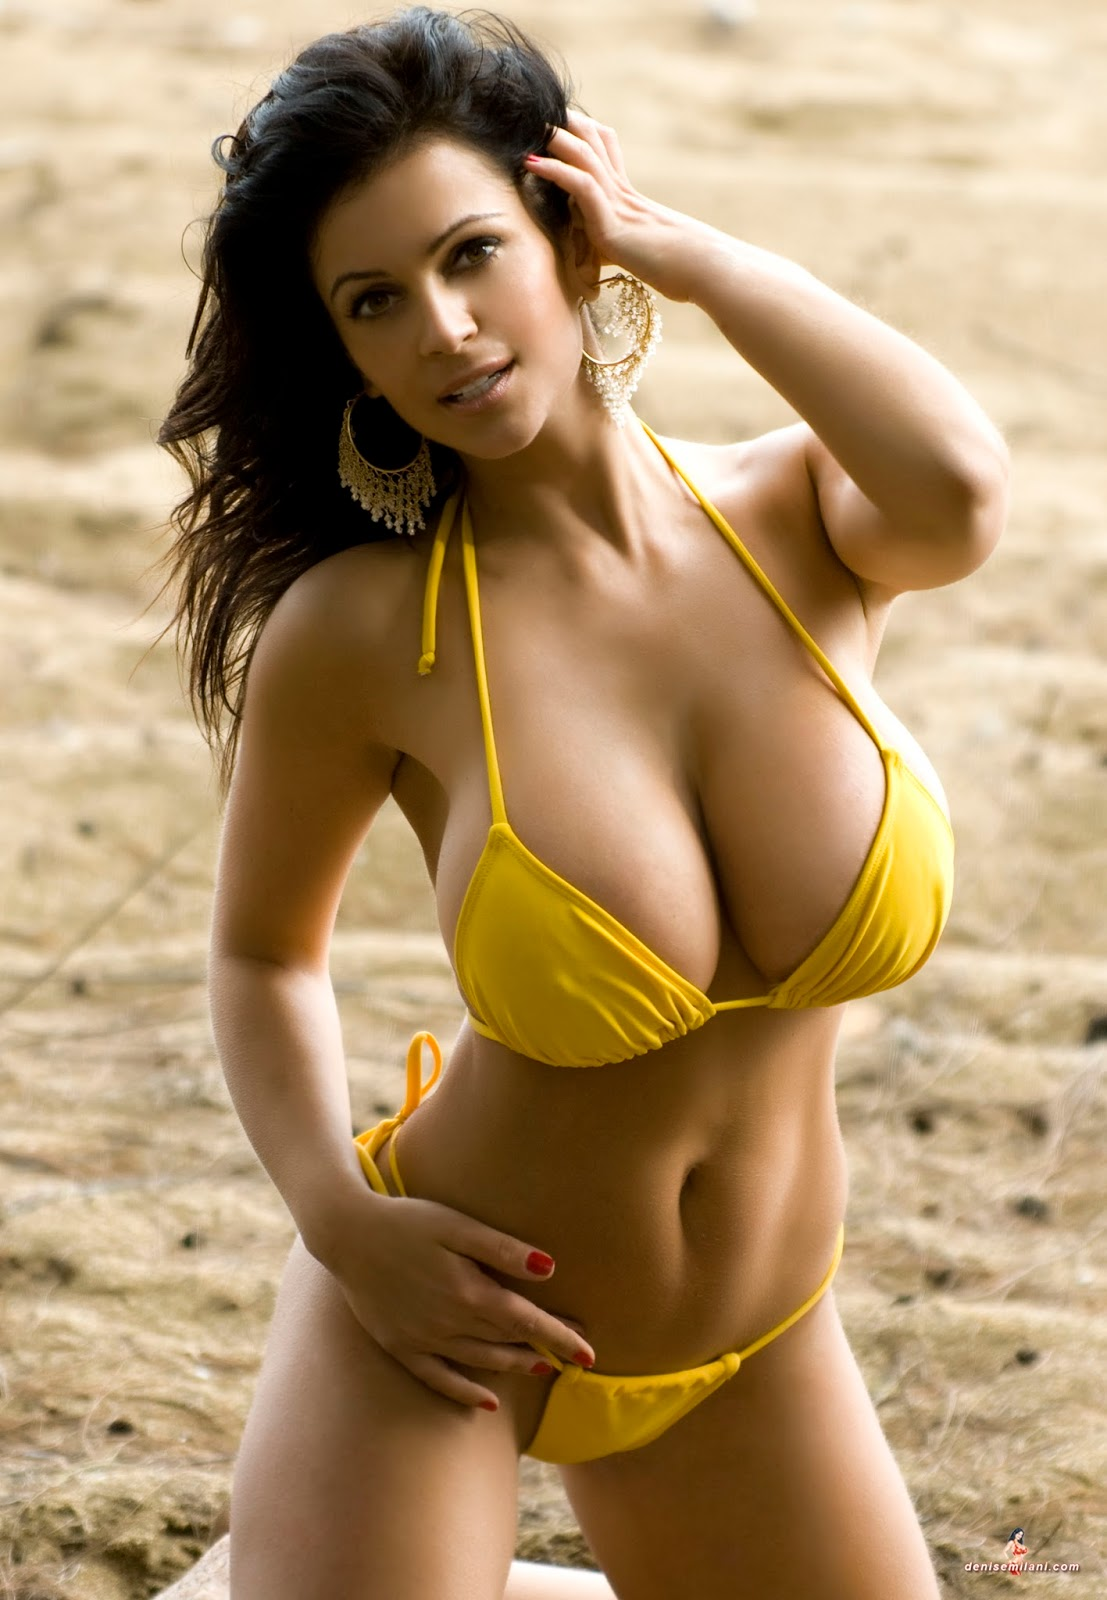 Denise Milani Sexiest Photoshoots: Denise Milani: Yellow ...